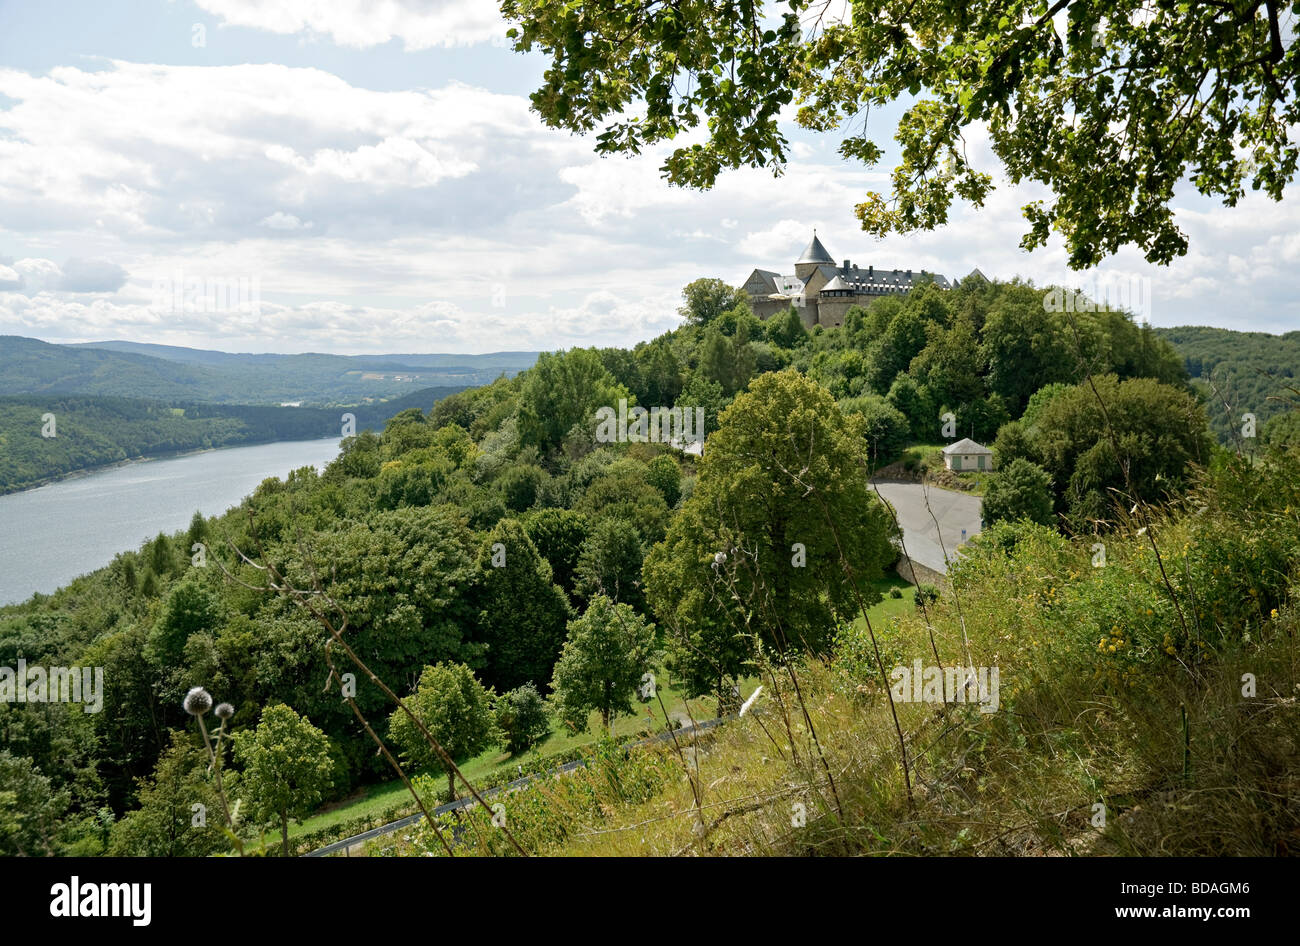 Schloss  Waldeck overlooking Edersee reservoir, Hesse, Germany. - Stock Image